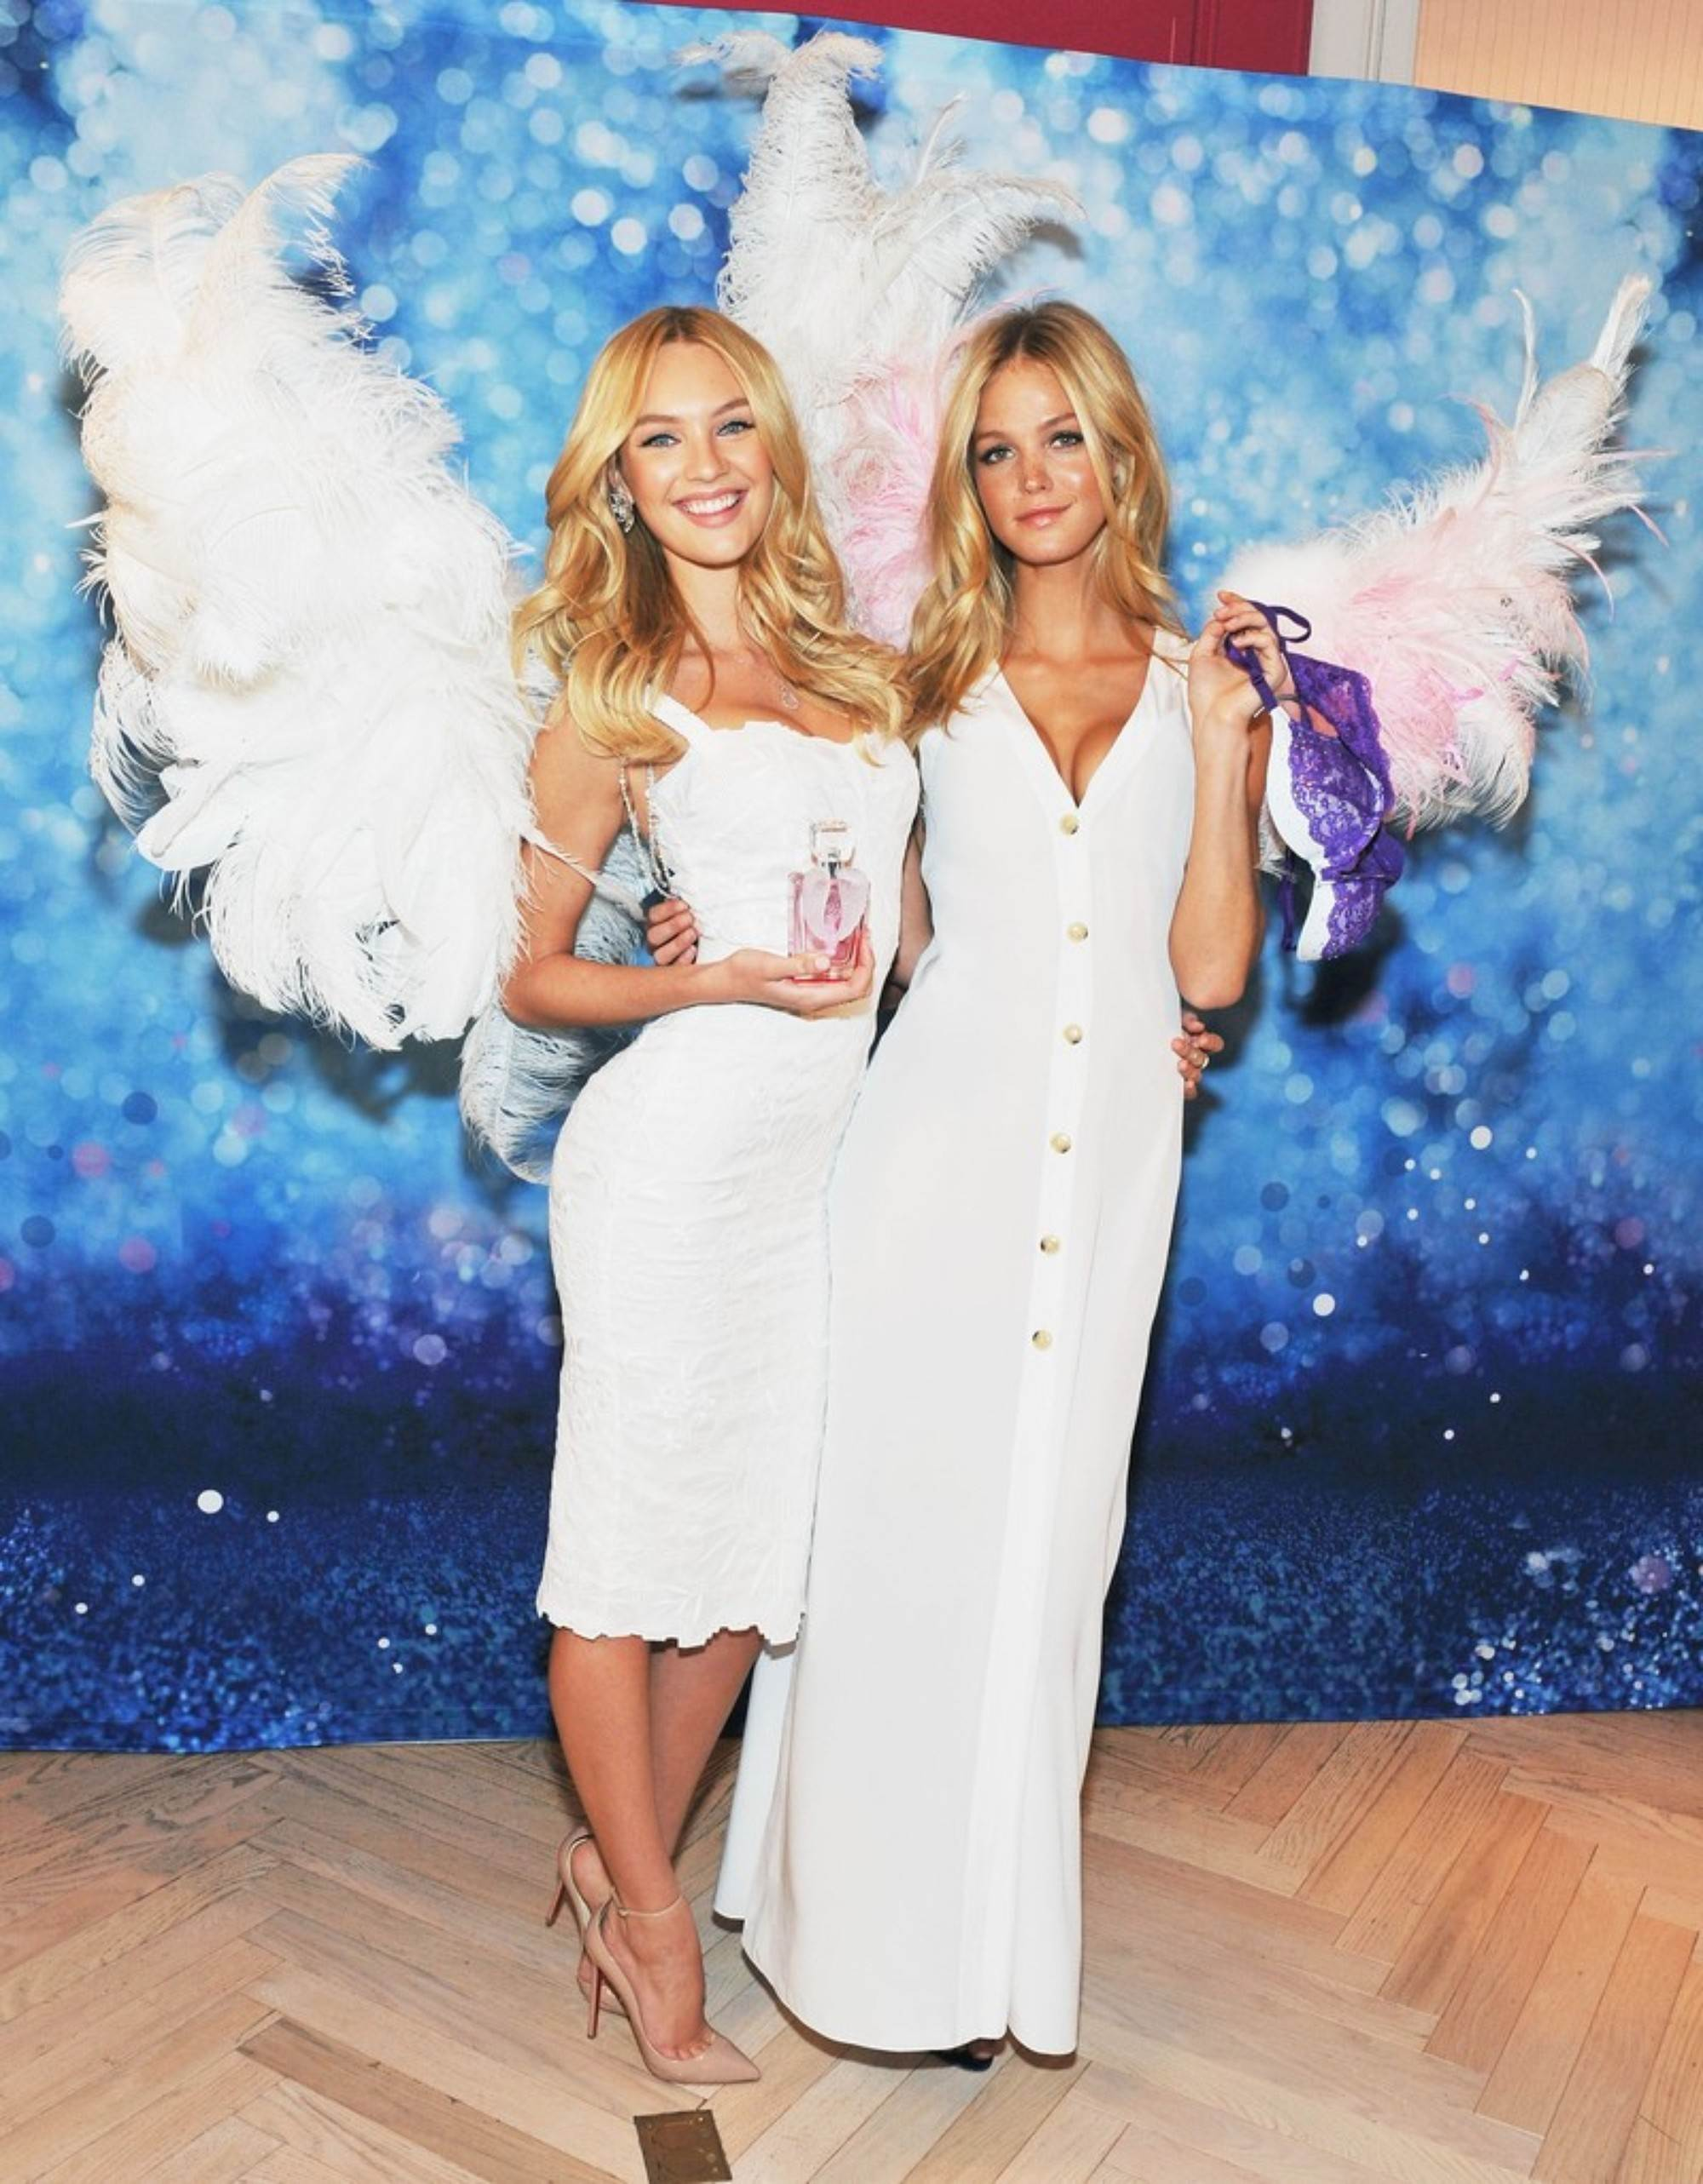 Candice Swanepoel and Erin Heatherton – Hot in White Dress at Angel Month Launch-04